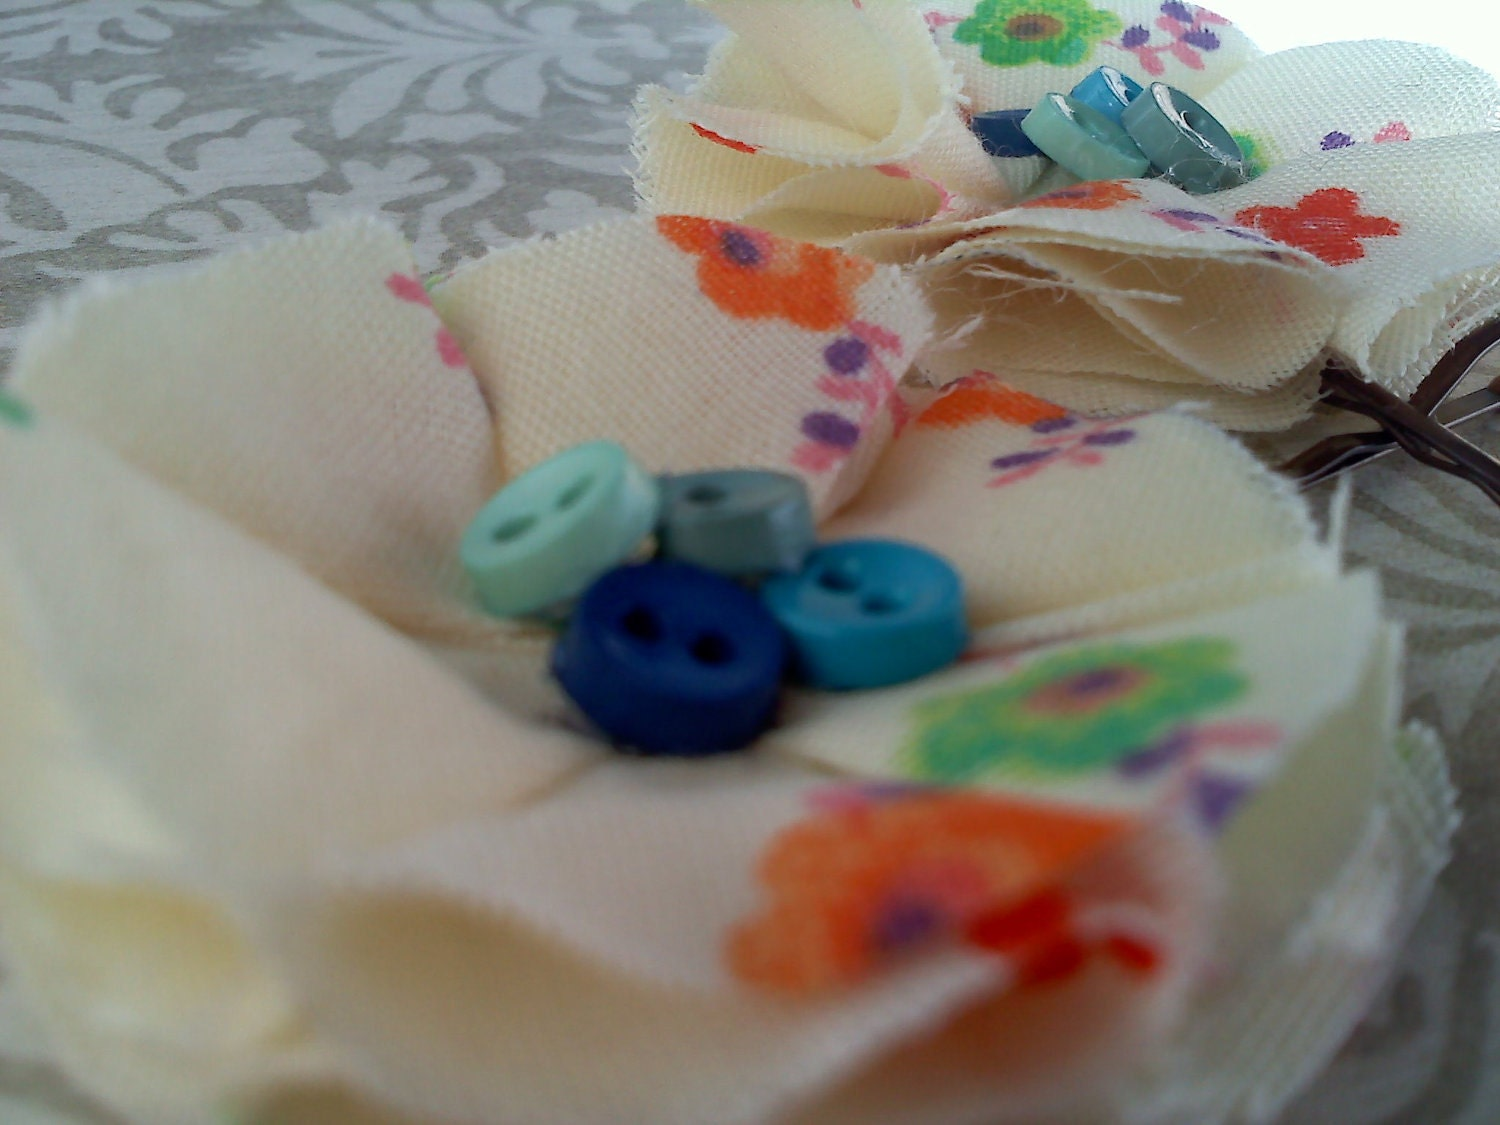 60's vintage floral print bobby pins with blue buttons